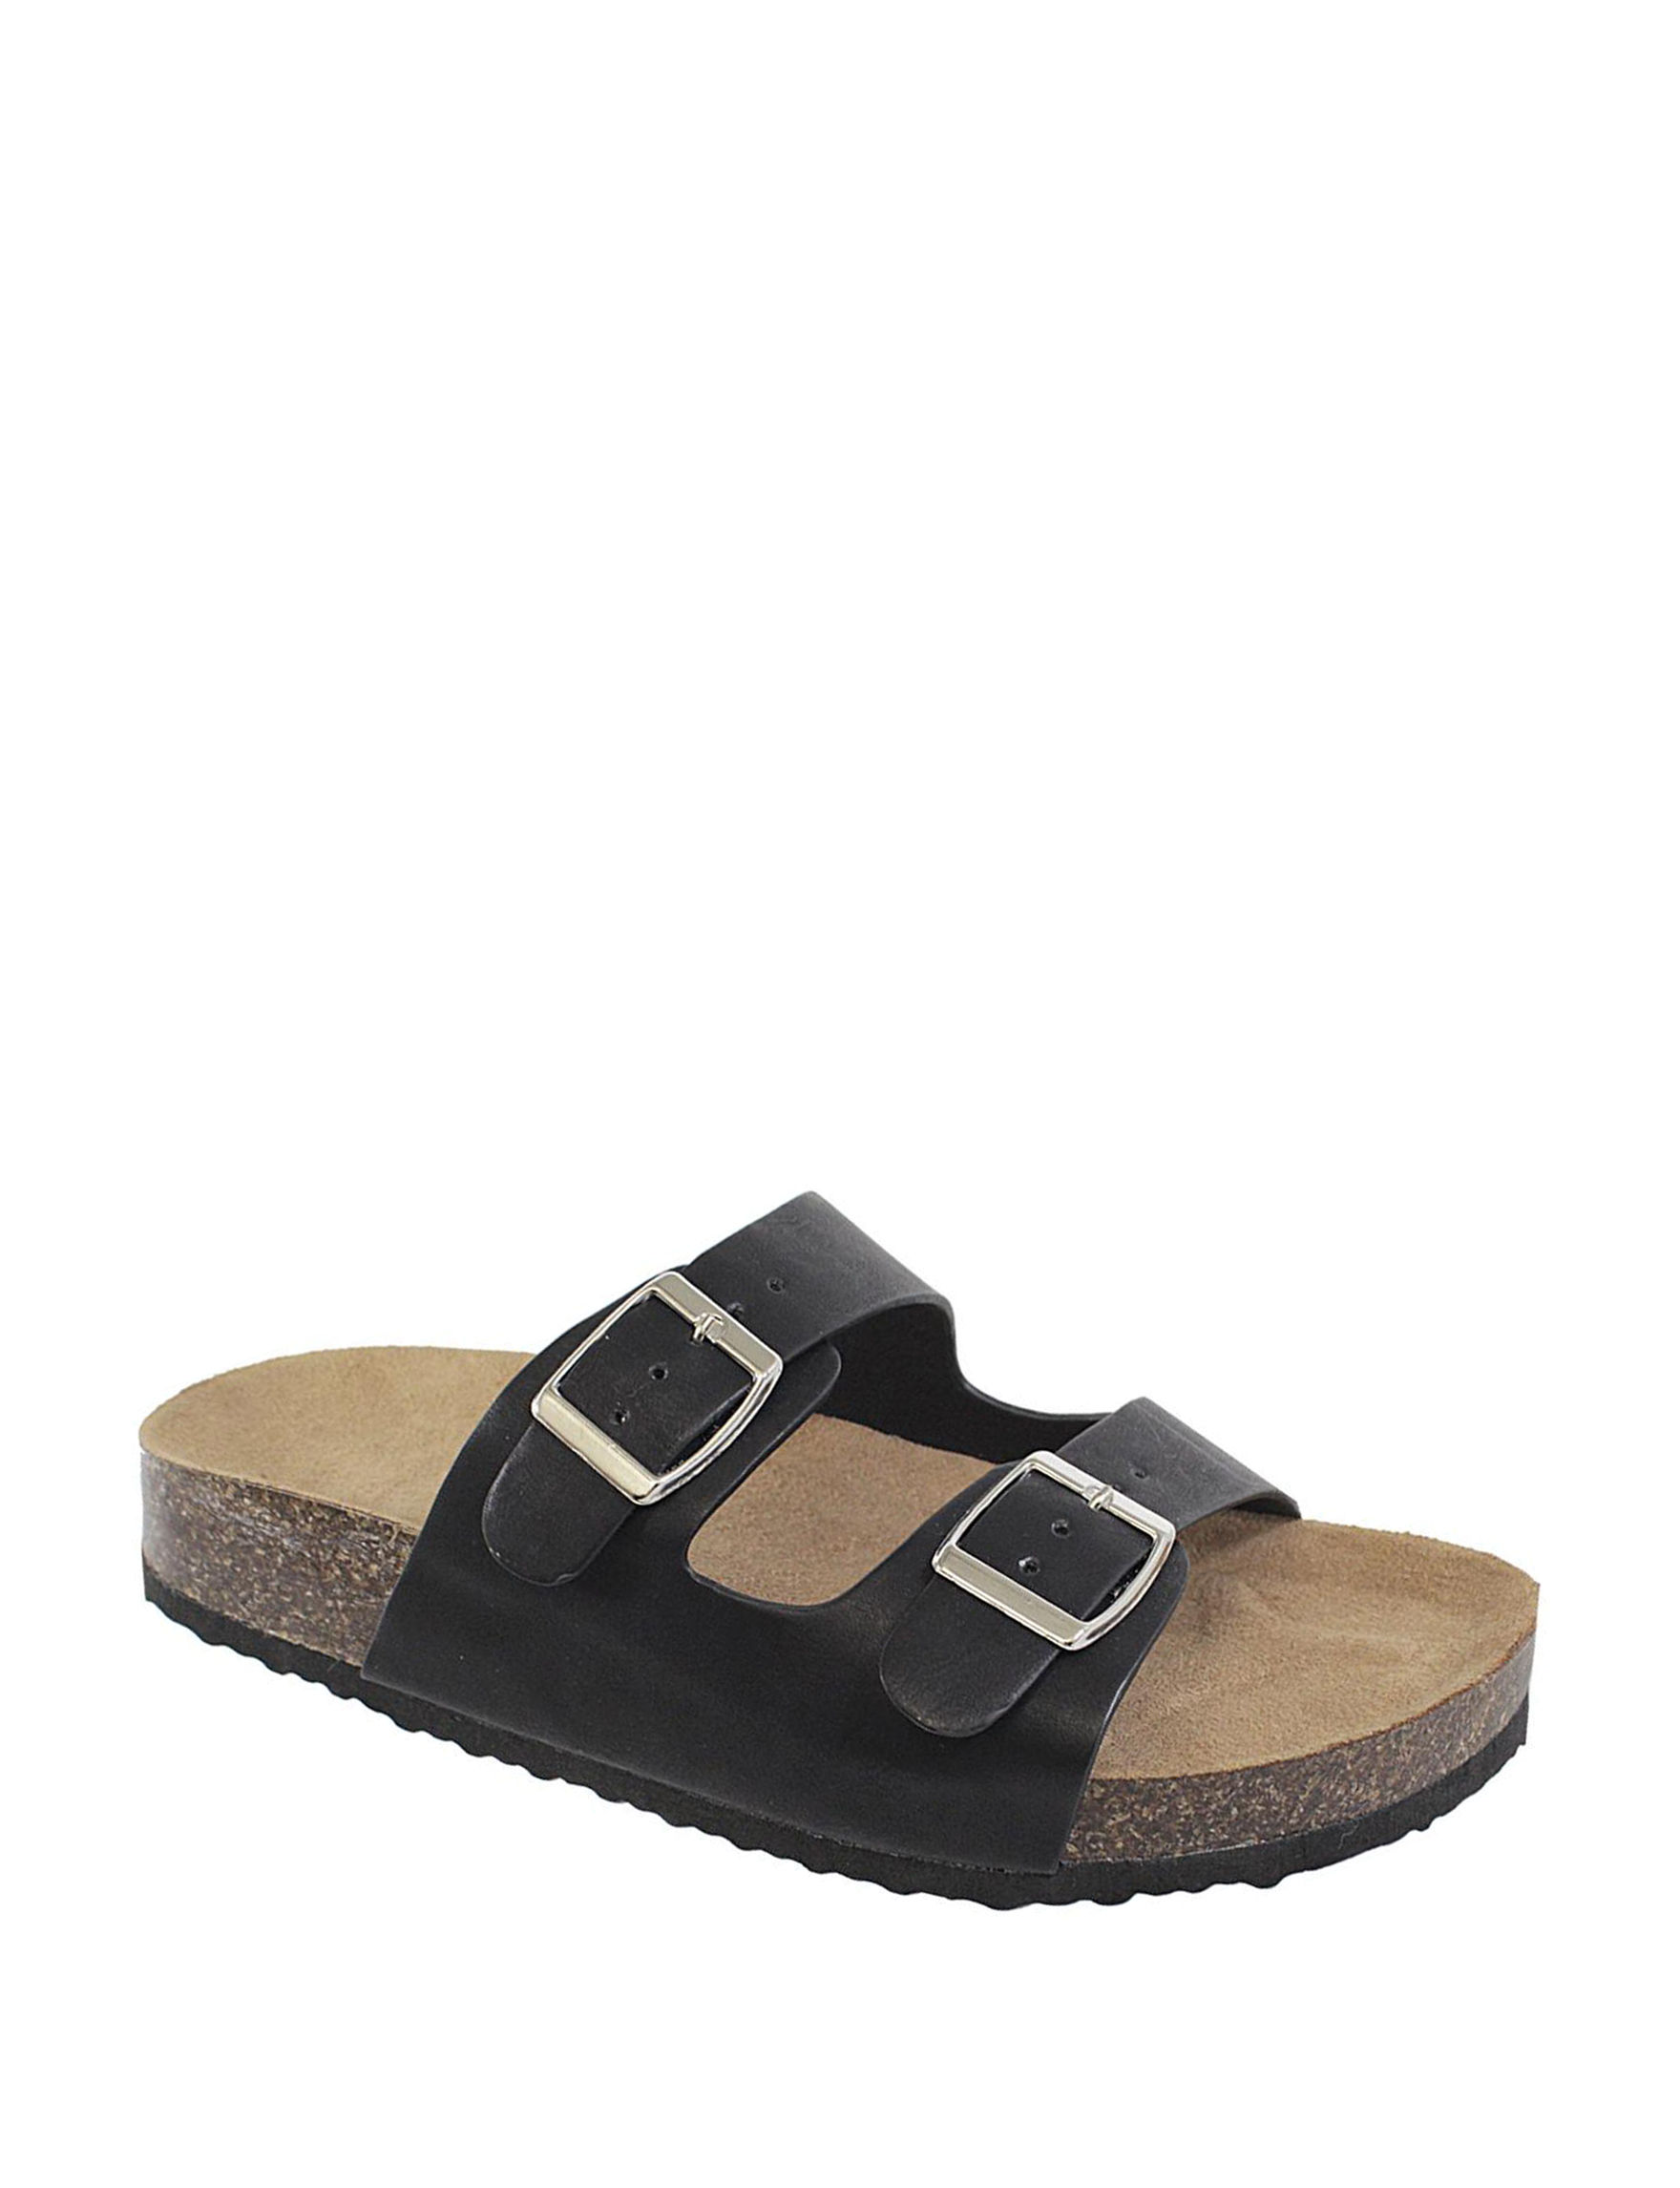 Yoki Black Slide Sandals